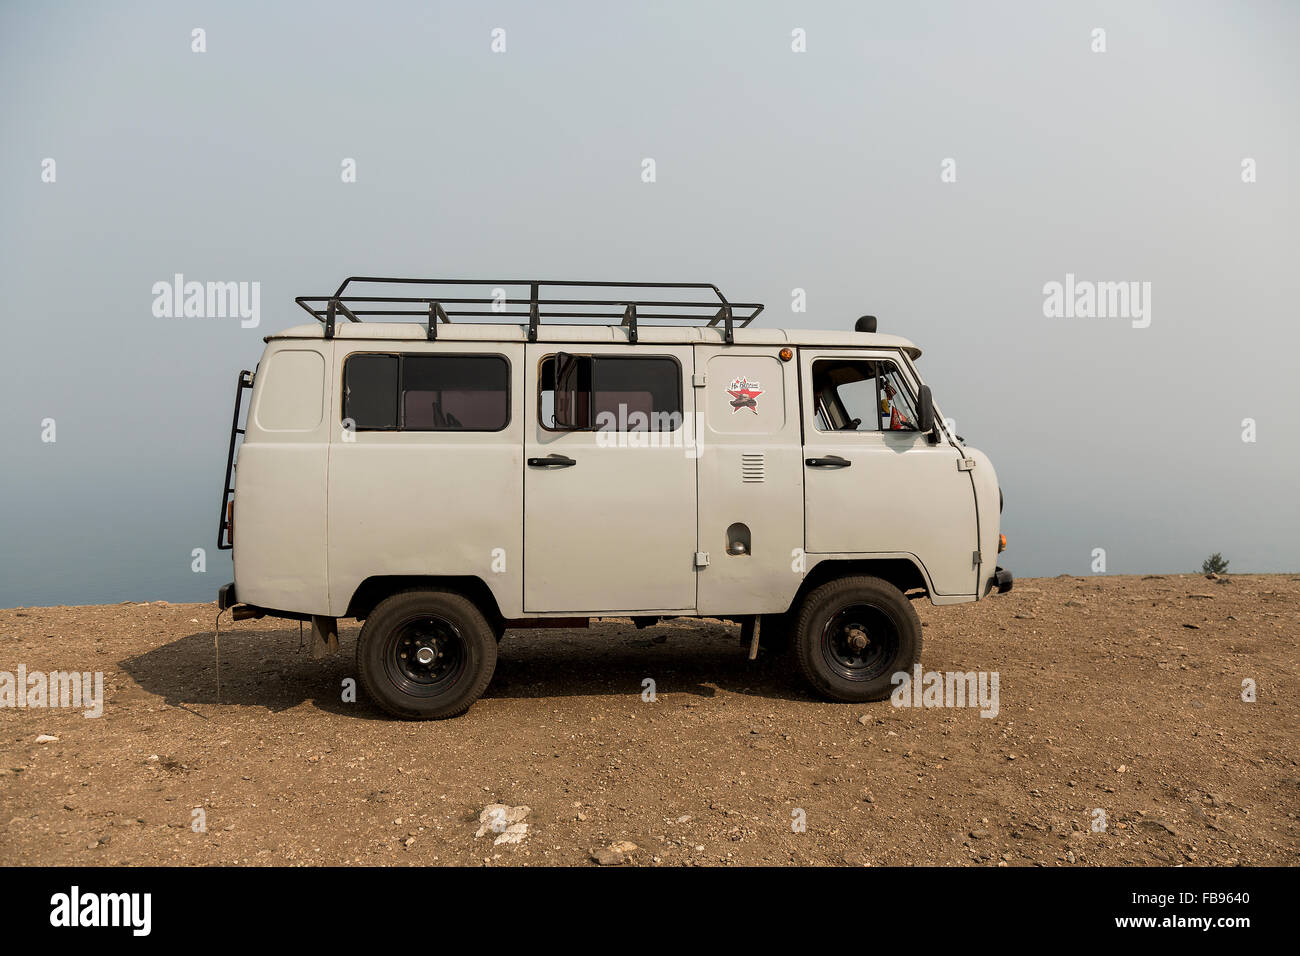 Olkhon Island - Lake Baikal, Russia. July 2015- Russian Uaz van parked on a cliff in Olkhon Island. - Stock Image